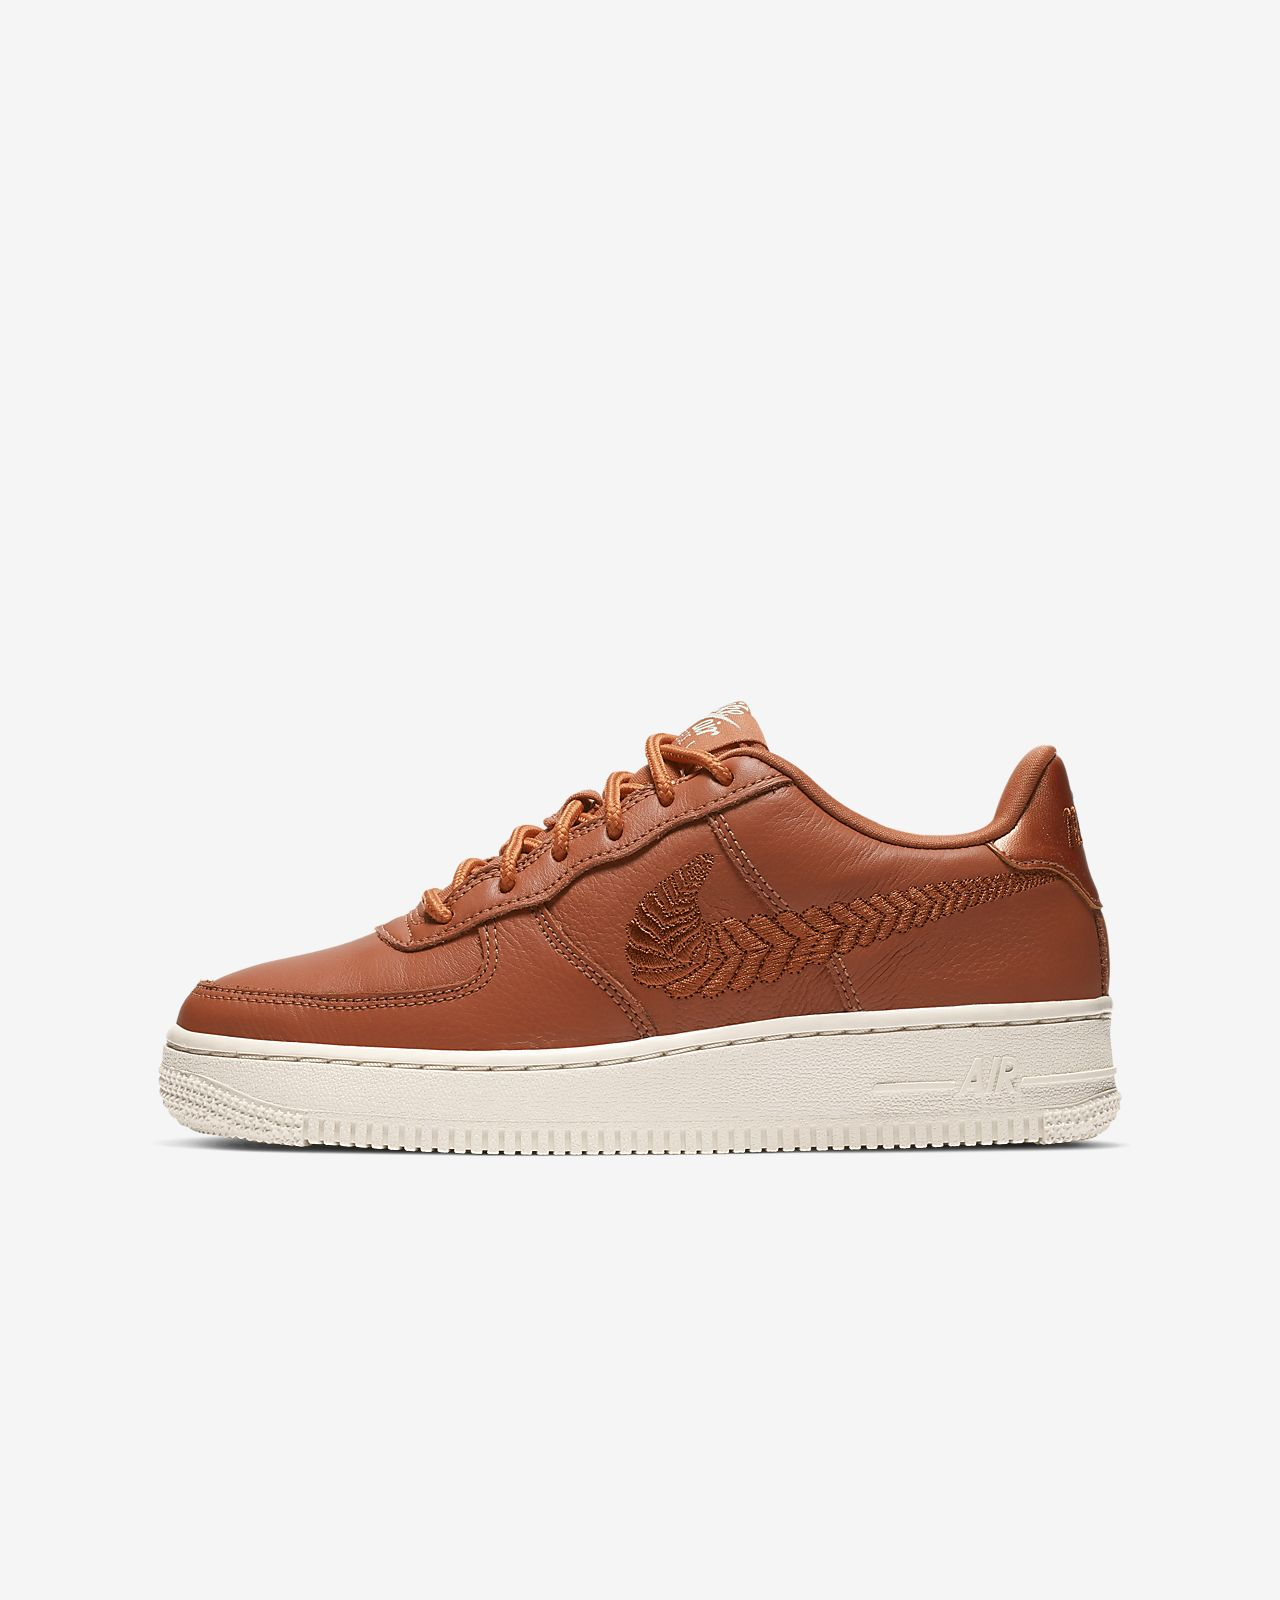 Nike Air Force 1 Premium Embroidered sko til store barn